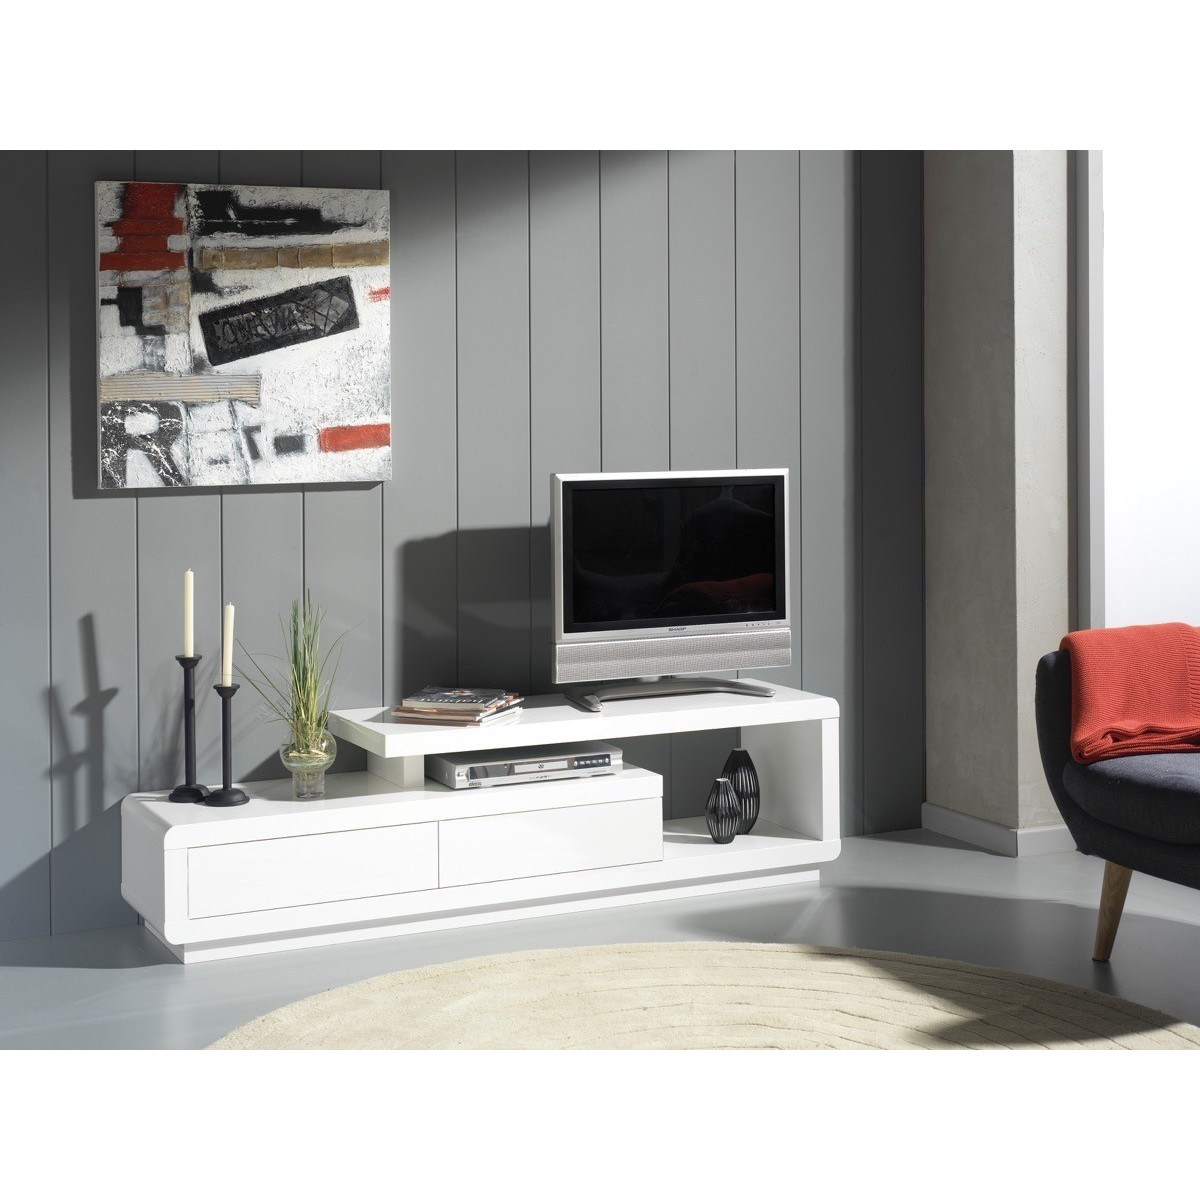 Zeus Blanc Lemobilier Ma # Meuble Tv Zeus